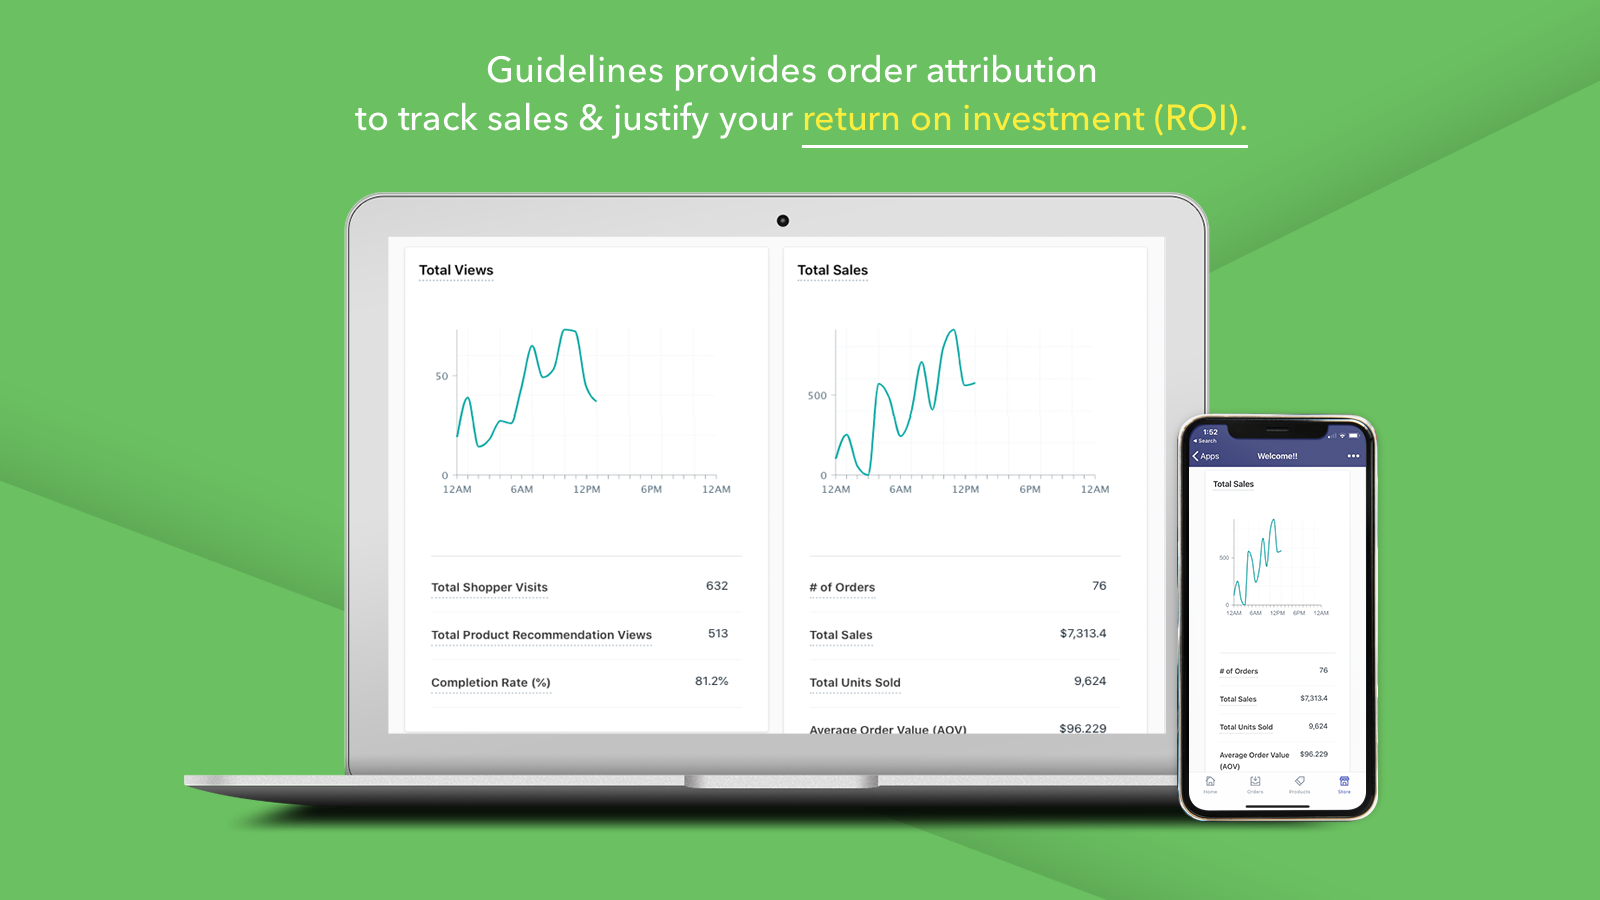 Guidelines analytics provides insights into customer's journeys